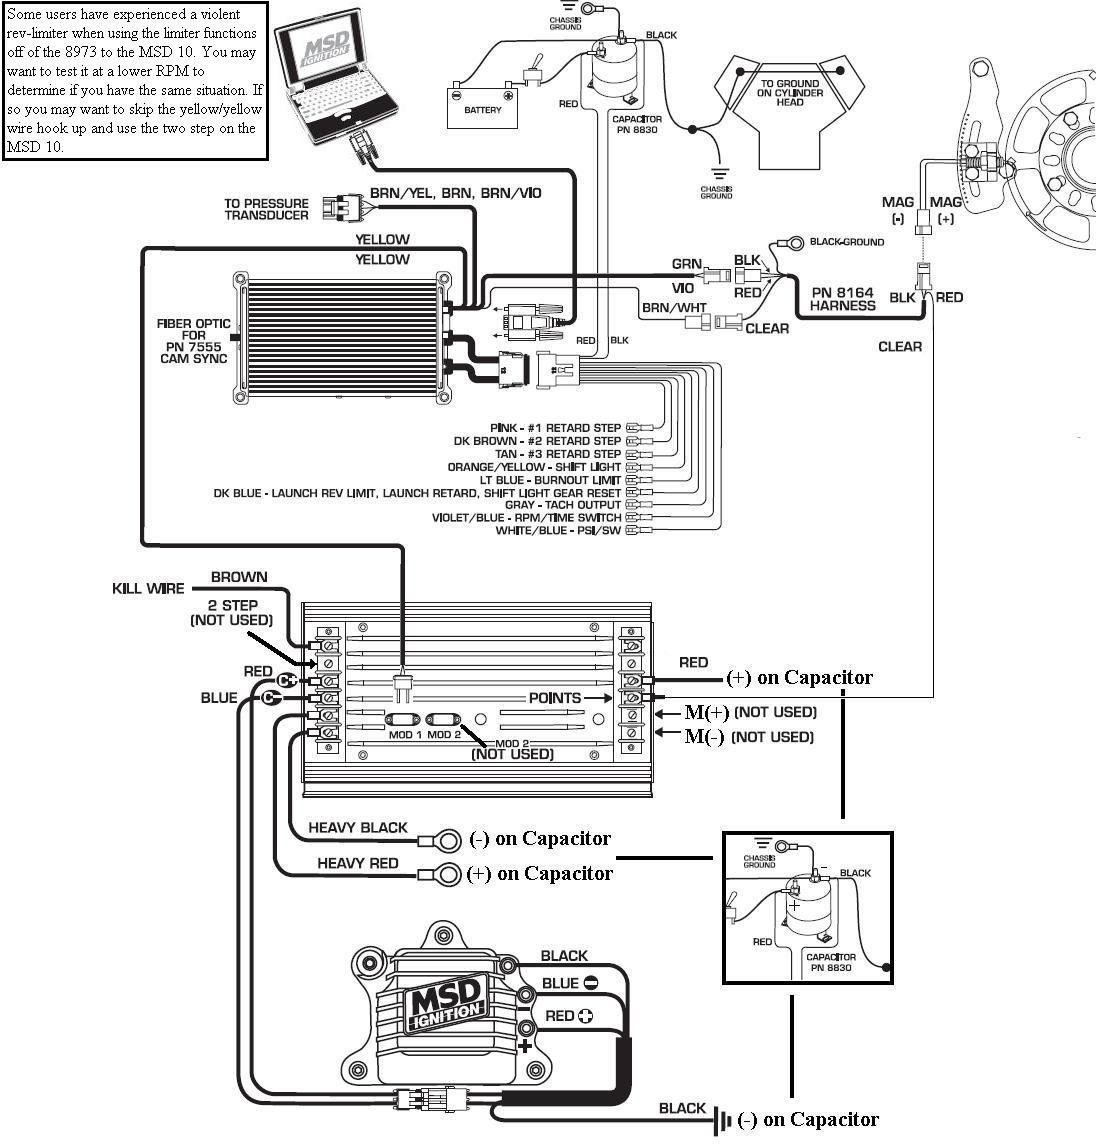 Humidistat Wiring Diagram as well Honeywell Switching Wiring Diagram together with Totaline Thermostat Wiring Diagram P474 1050 additionally Lennox Air Handler Wiring Diagram further 31aw4 Lennox 90ugf Furnace Unit Years Old. on honeywell humidifier wiring diagram